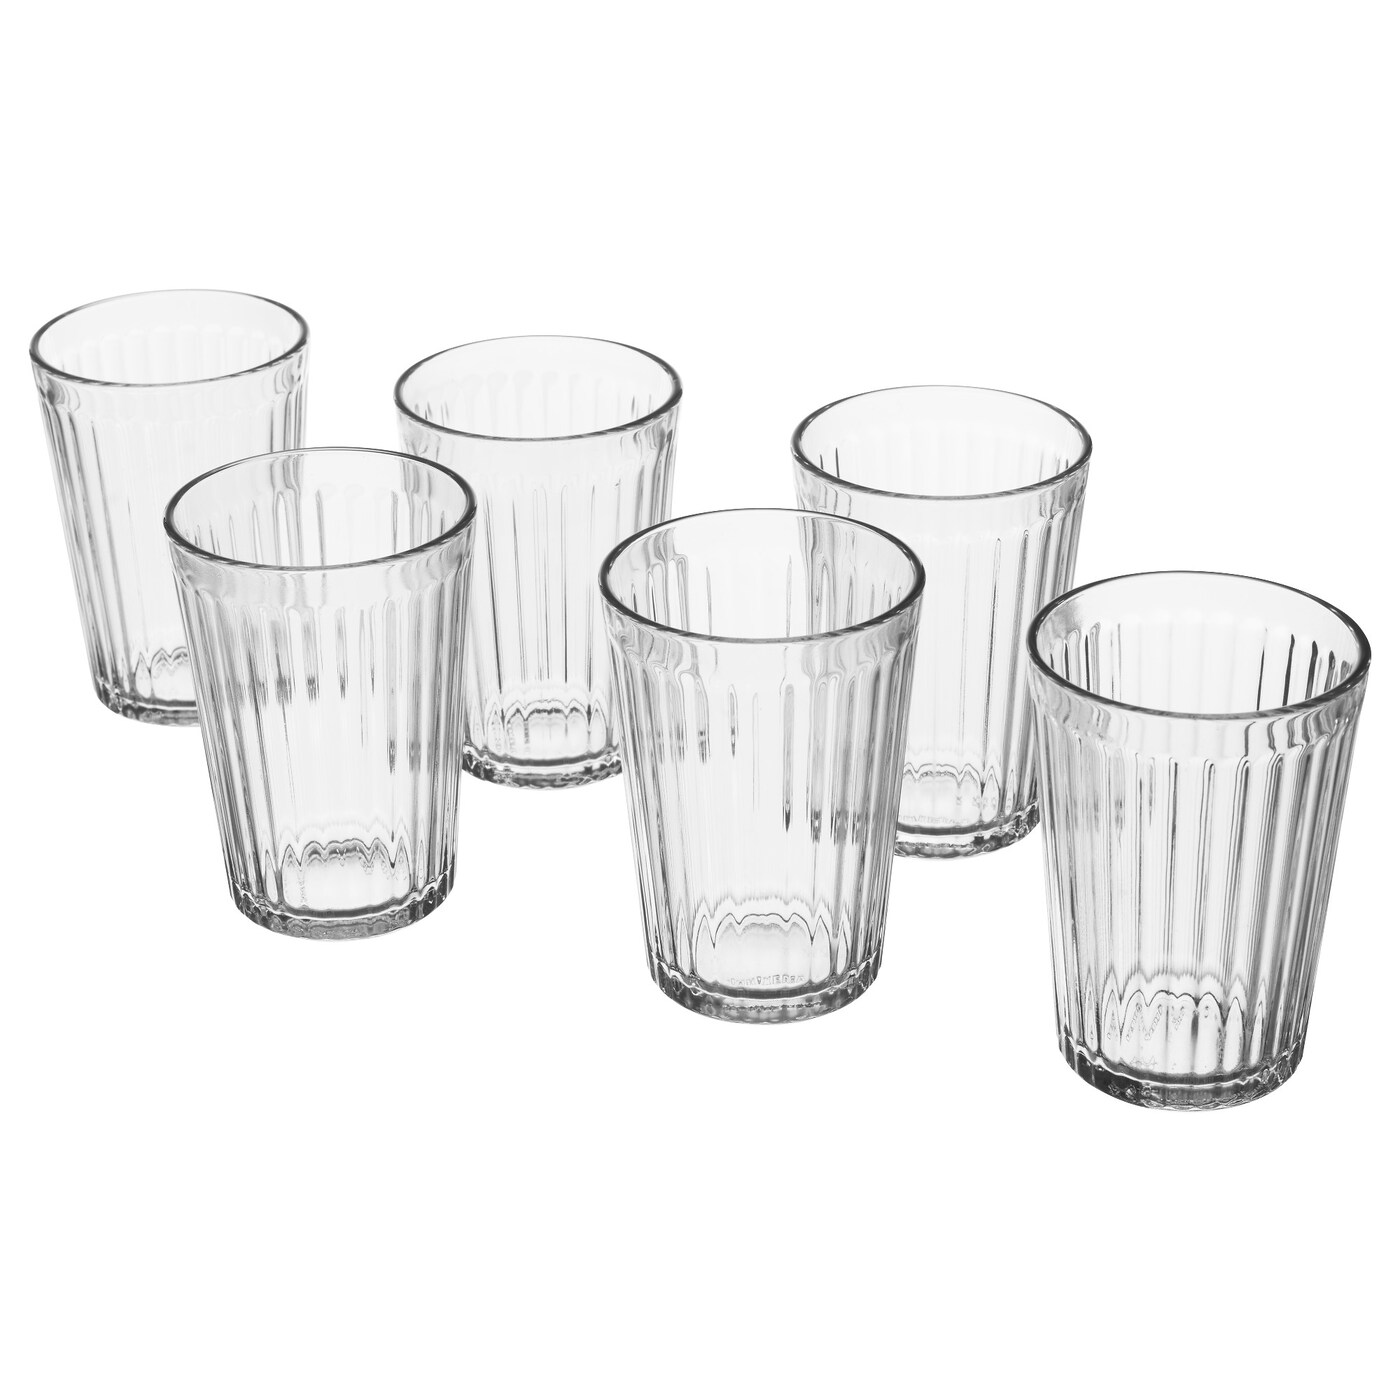 Glasses Amp Drinking Glasses